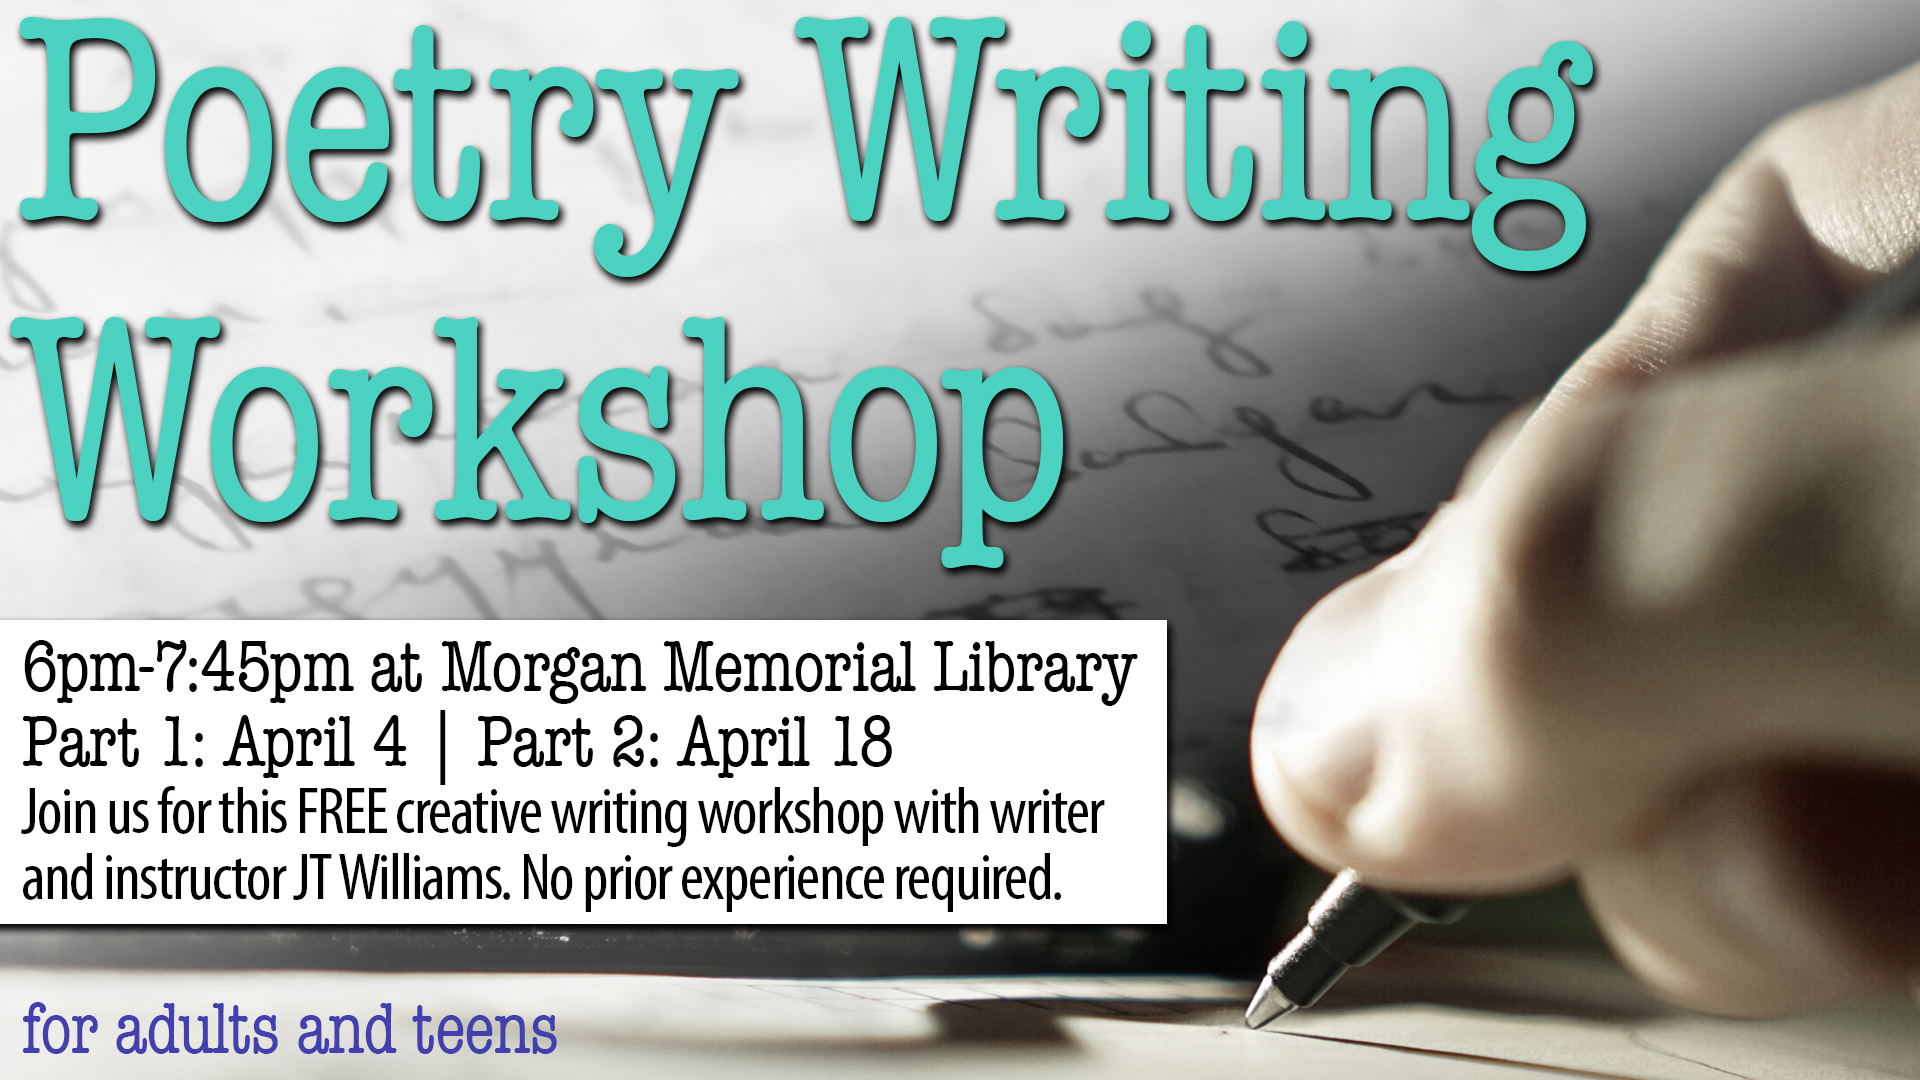 Tidewater Reads Poetry Writing Workshop